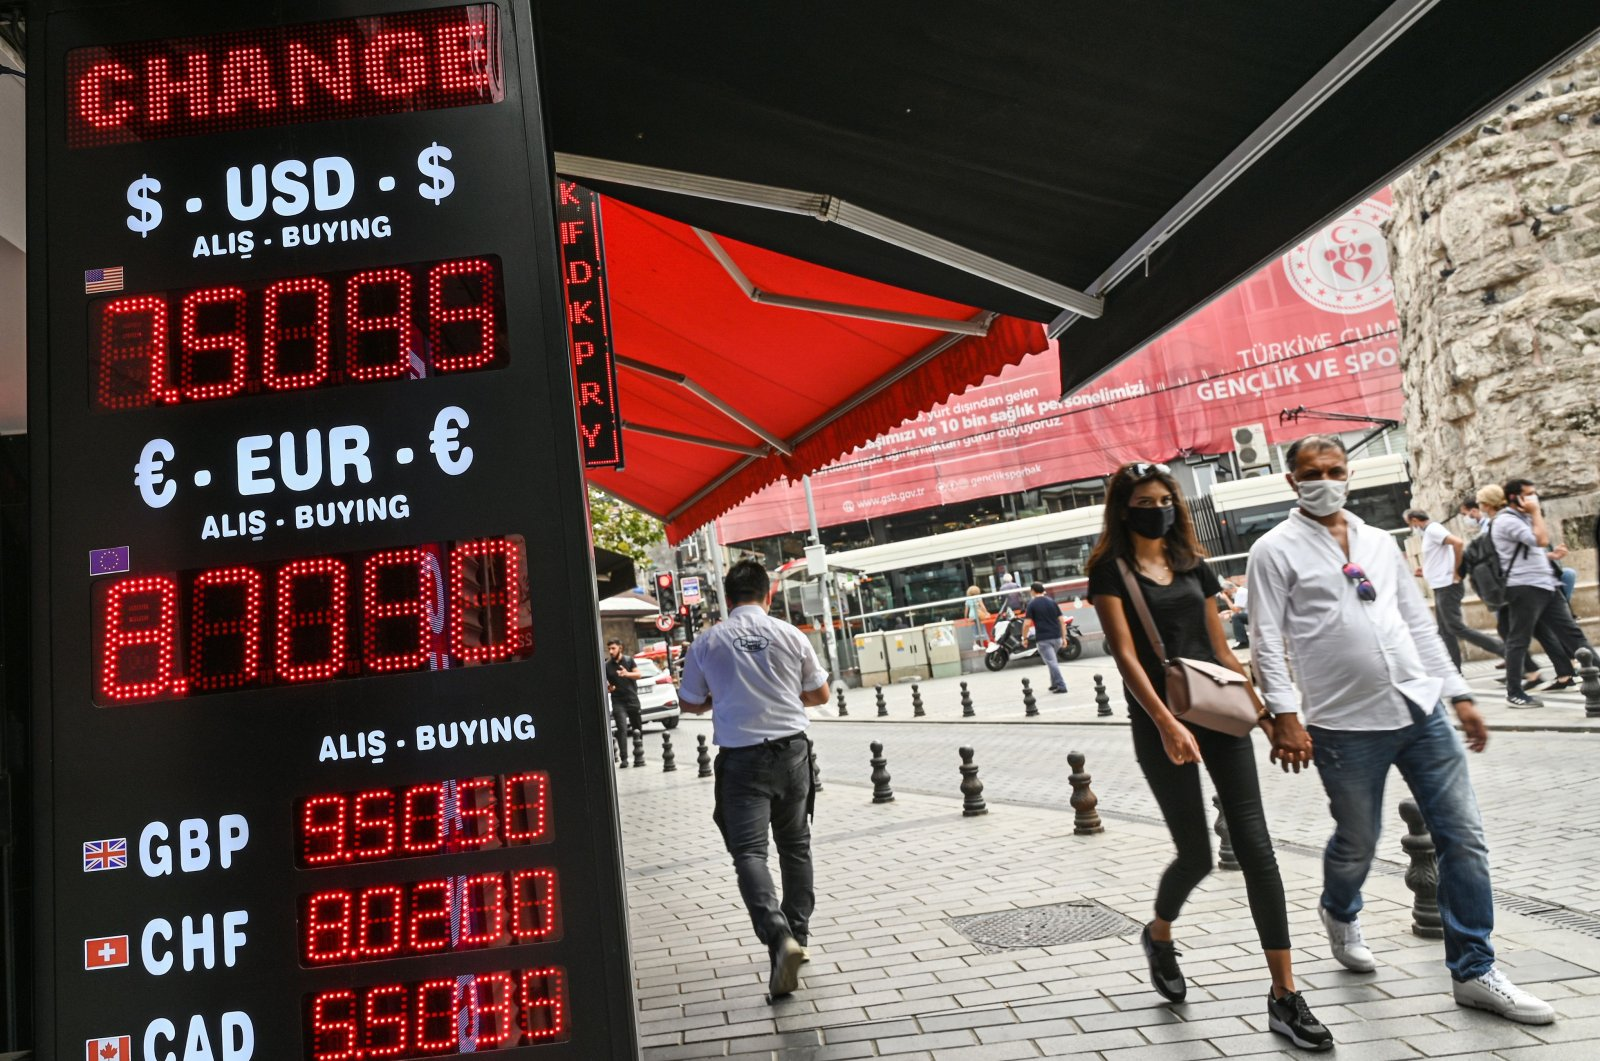 People walk past a screen showing rates at a currency exchange agency near the Grand Bazaar, Istanbul, Sept. 24, 2020. (AFP Photo)